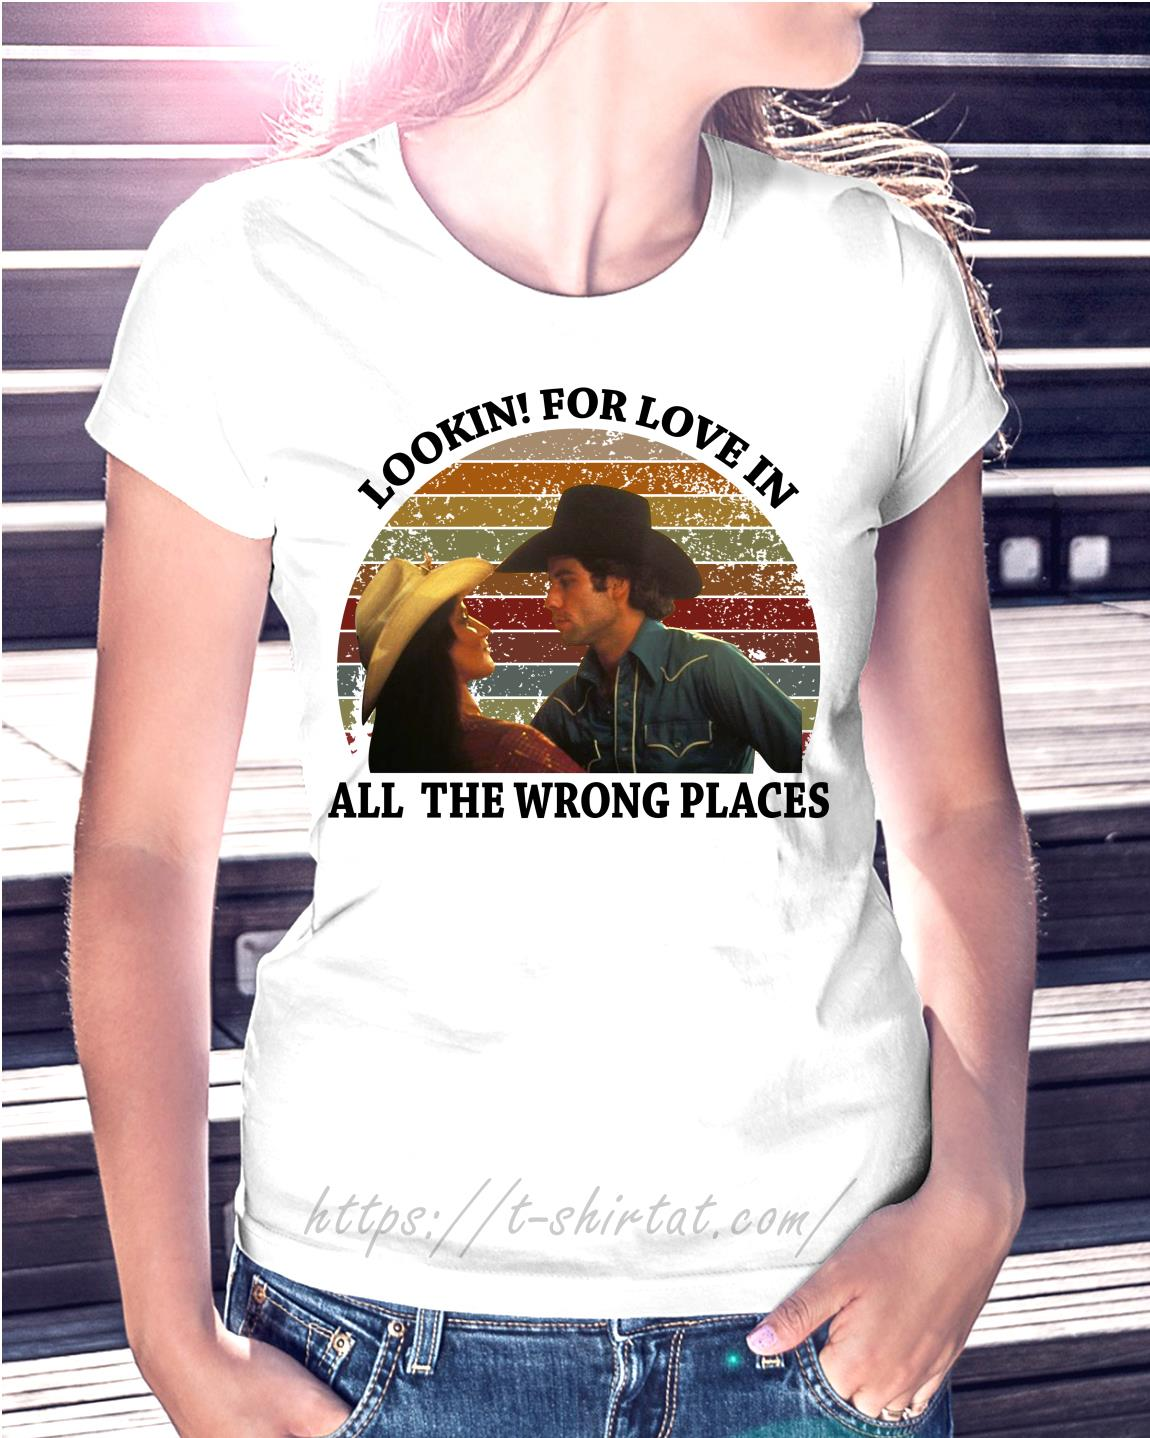 6b73b21cc Urban Cowboy lookin for love in all the wrong places vintage shirt